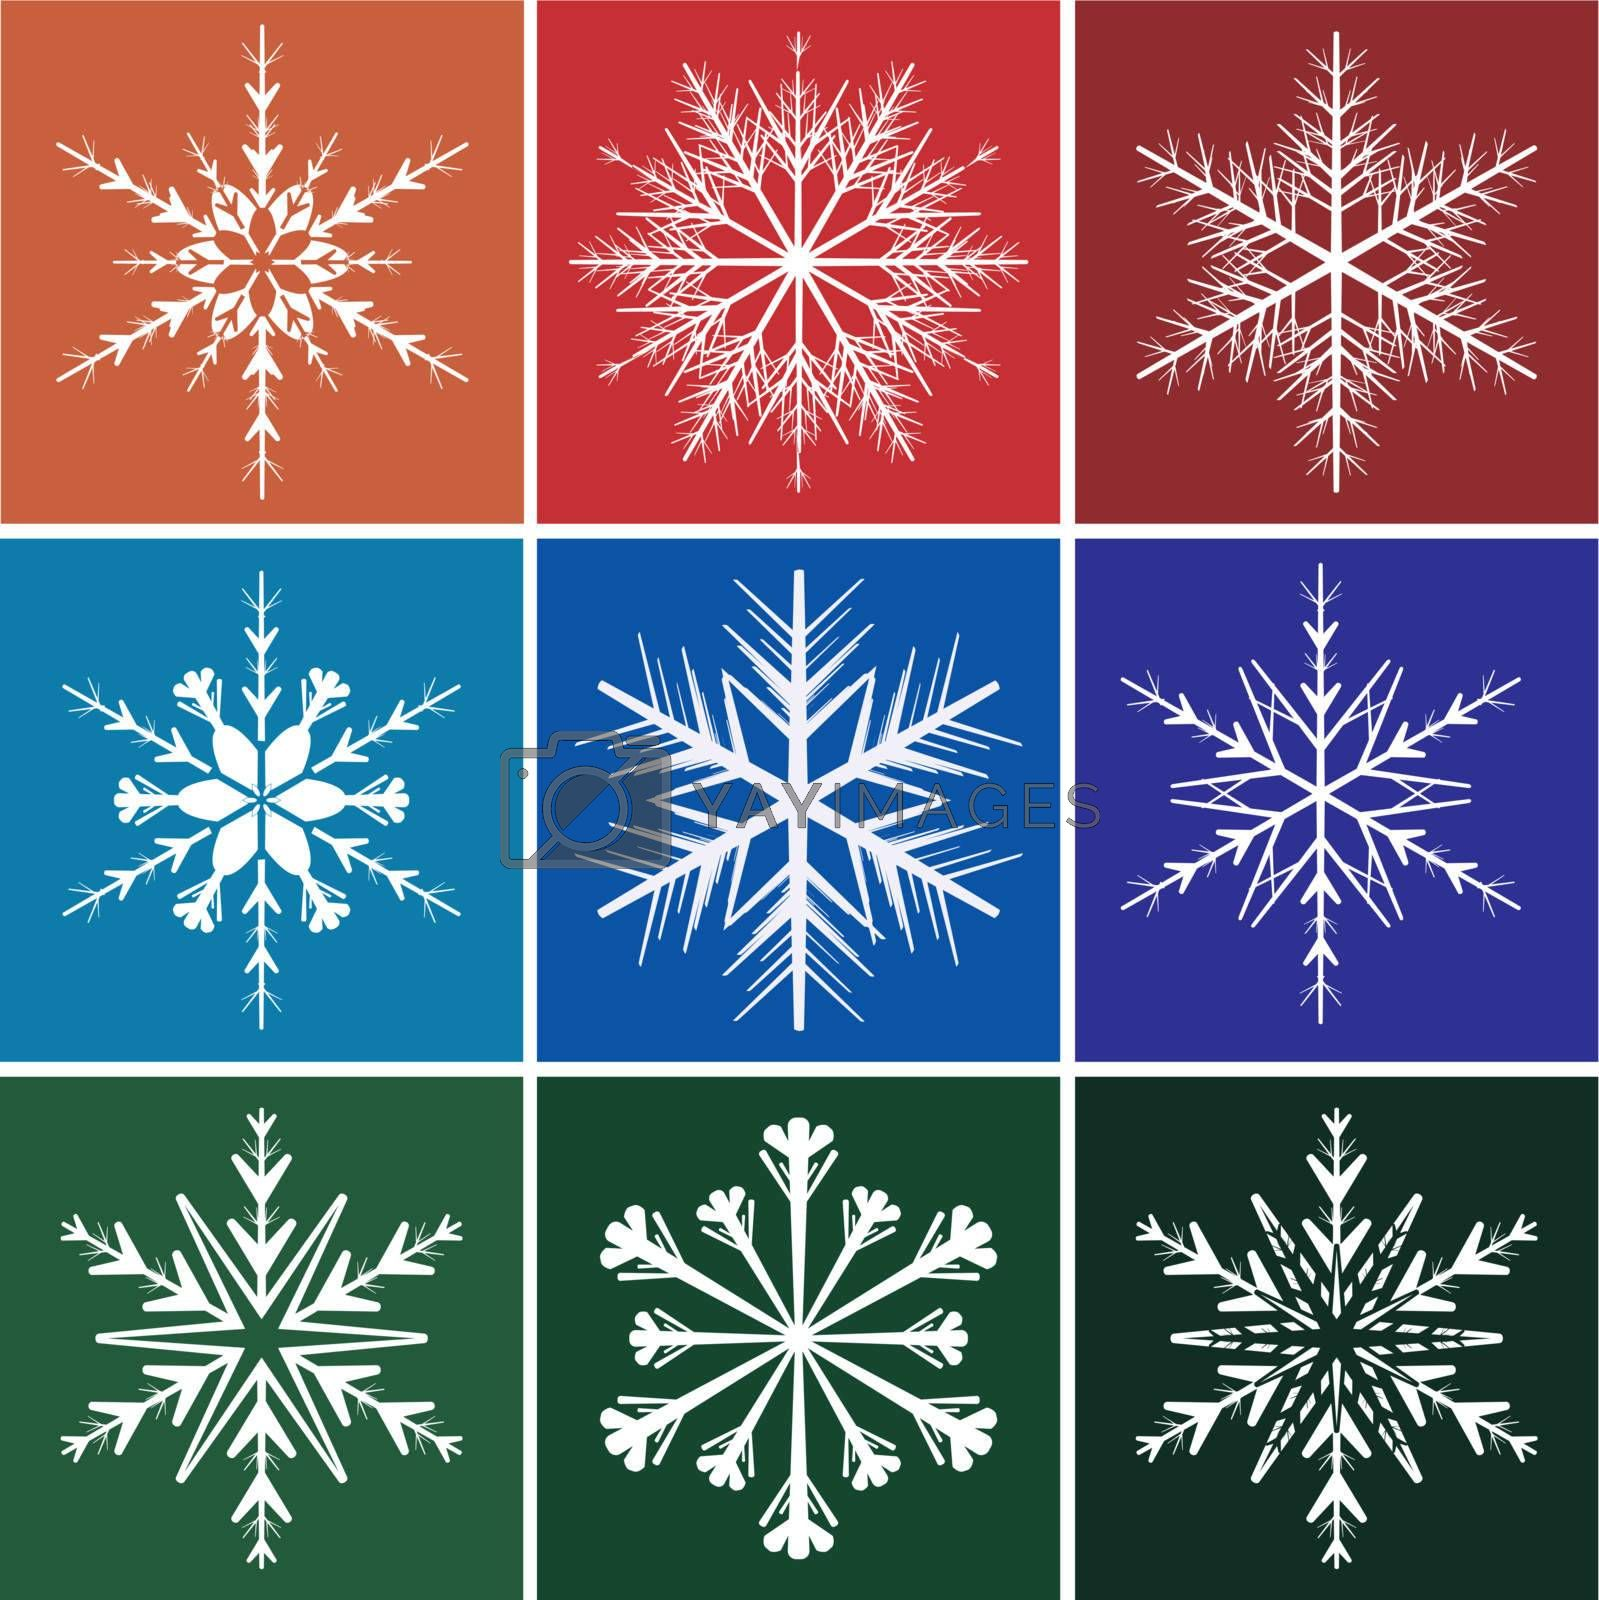 Royalty free image of Snowflakes by ard1